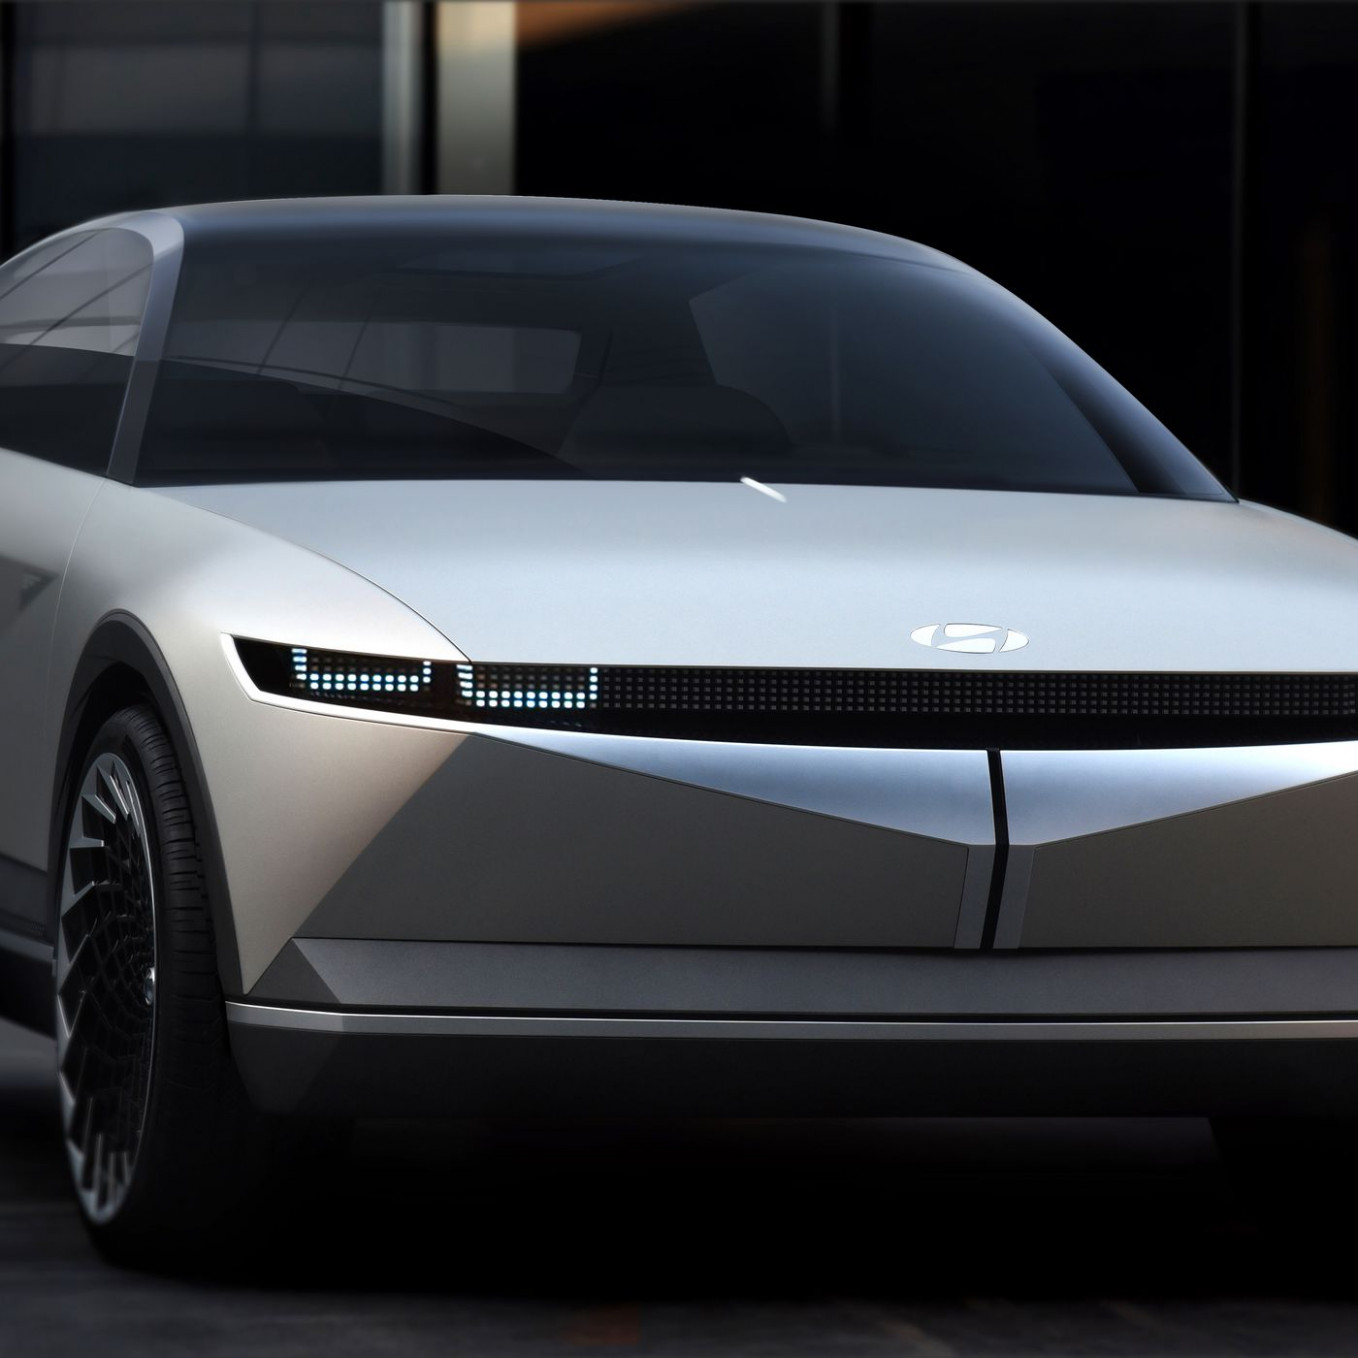 Hyundai's 7 electric concept car is a futuristic blast from the ...